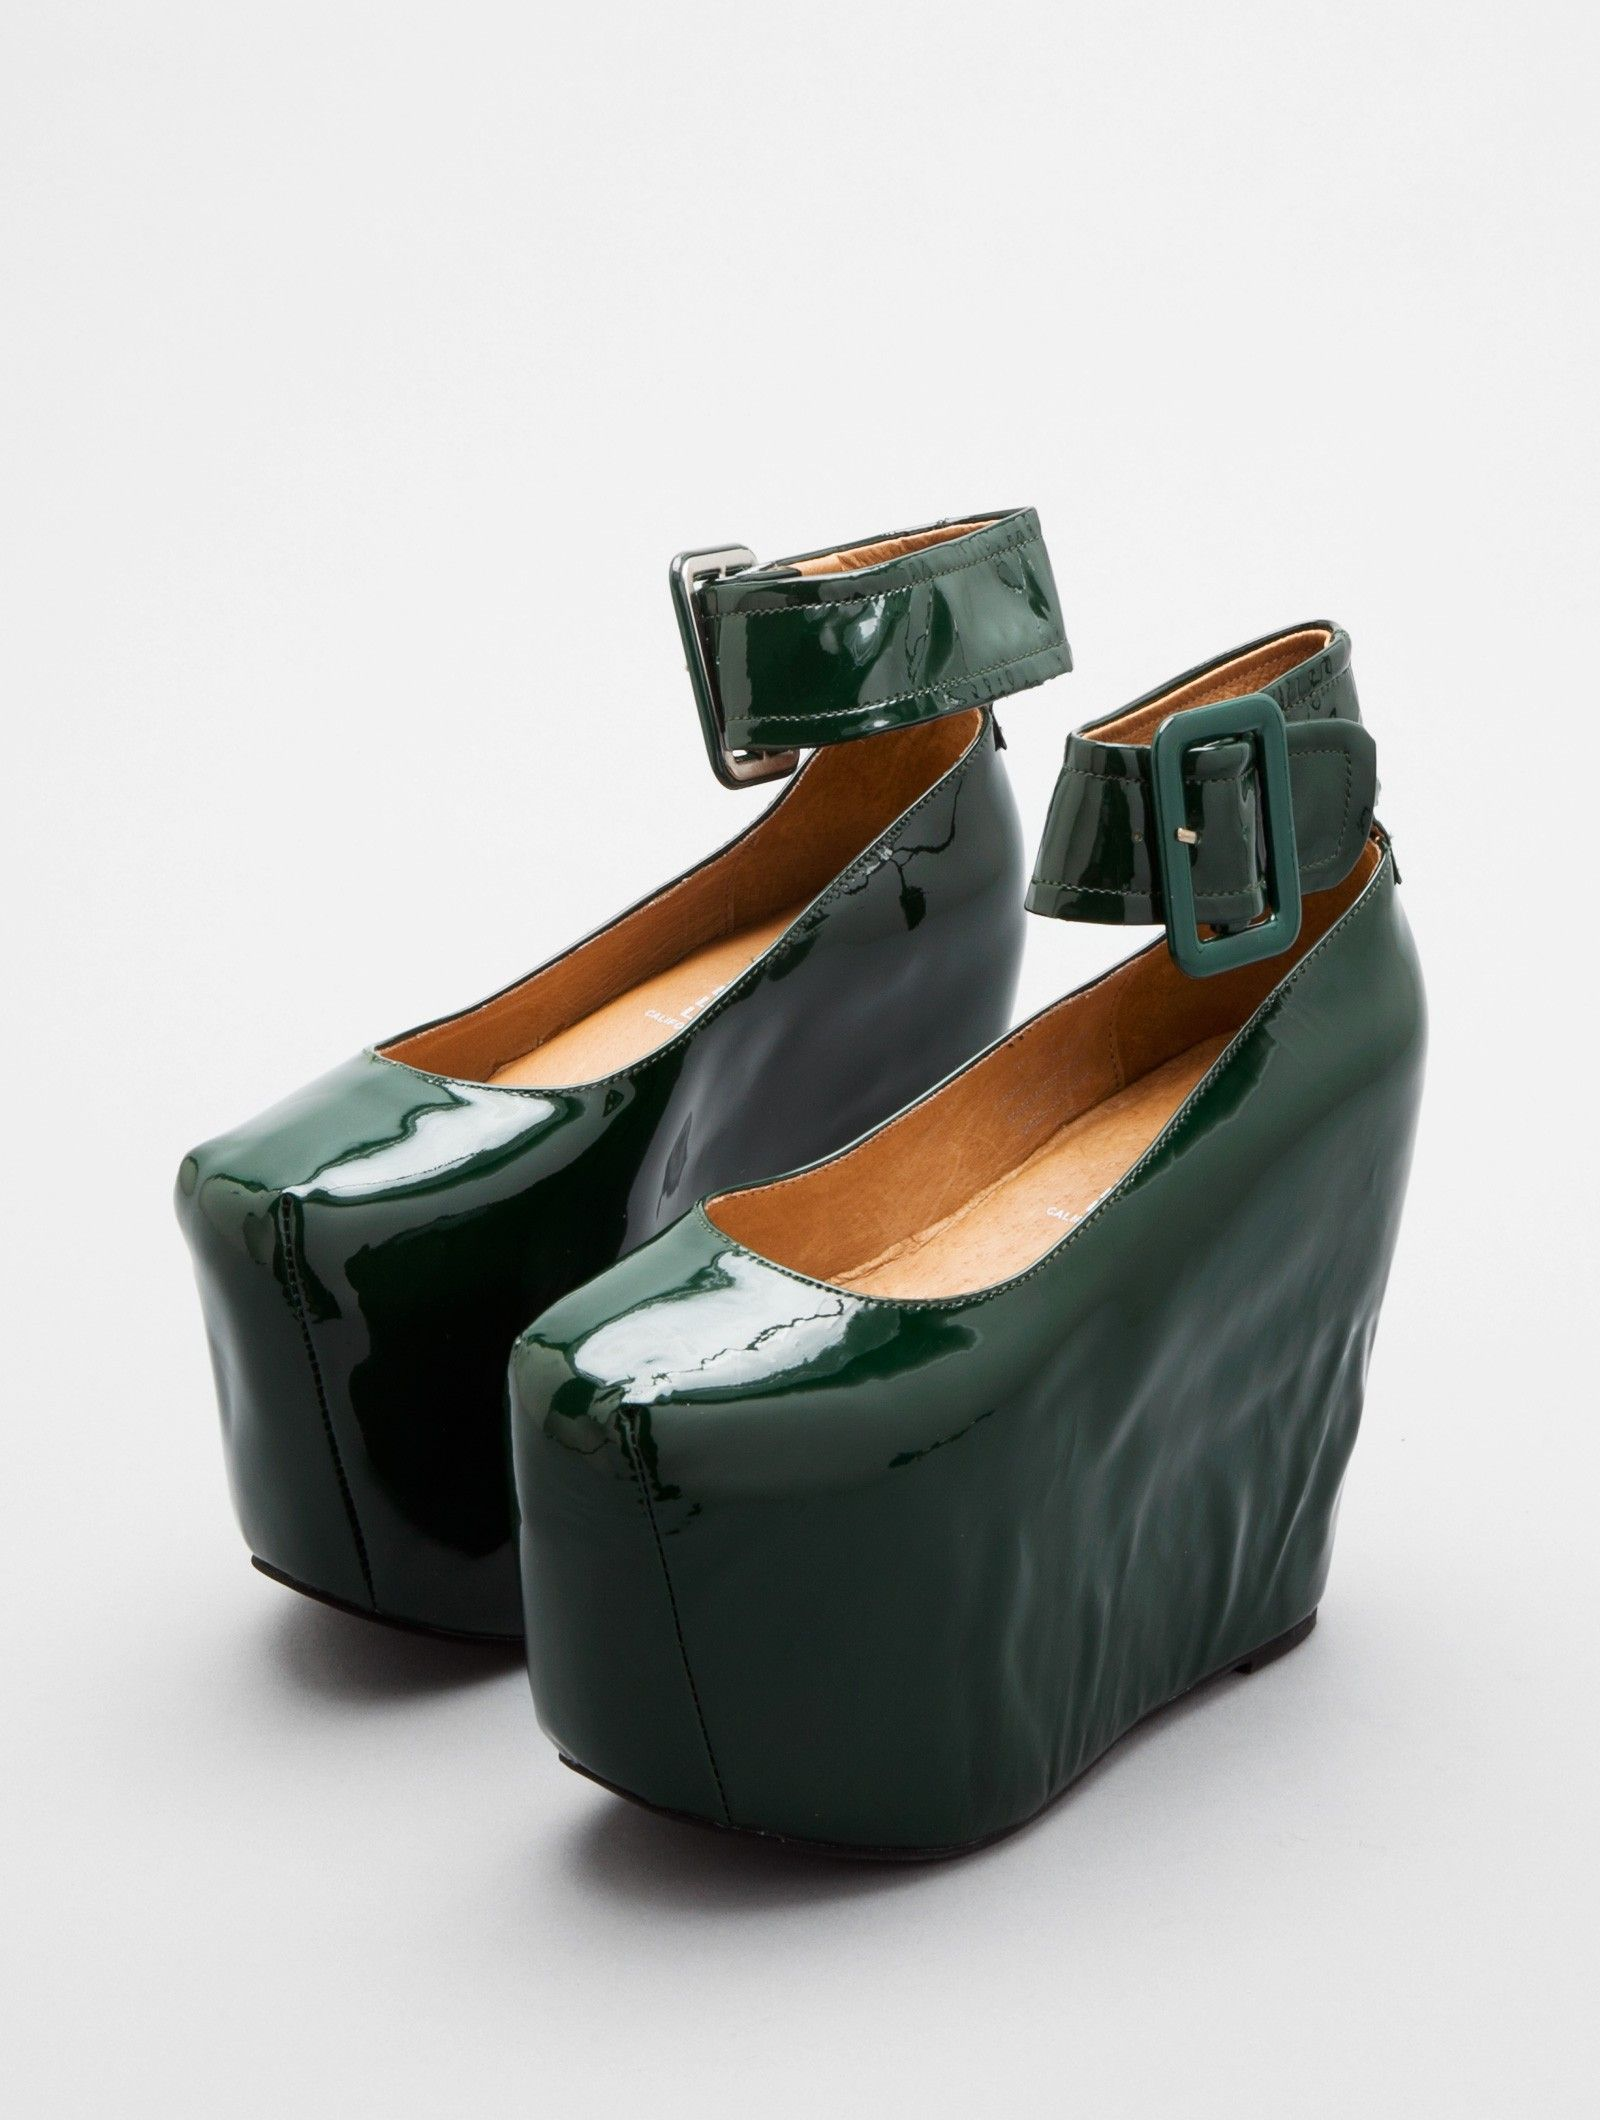 POINTE by Jeffrey Campbell